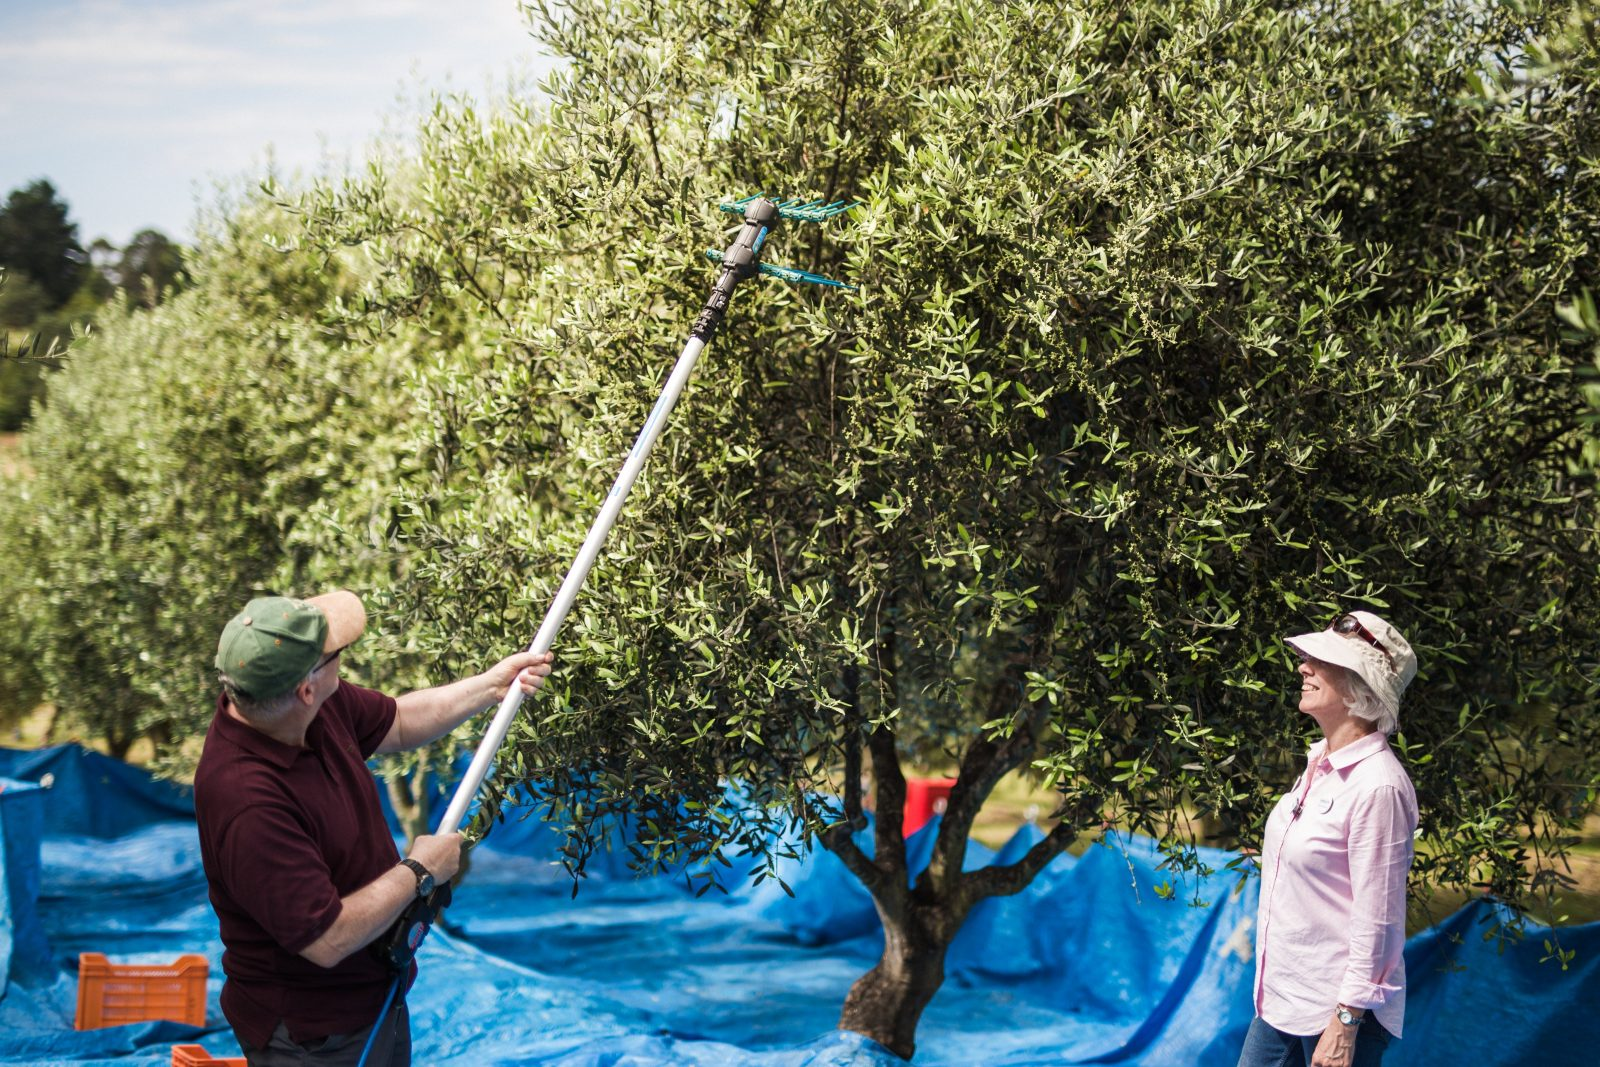 Try your hand at harvesting olives - at Village Olive Grove during Farmgate Festival